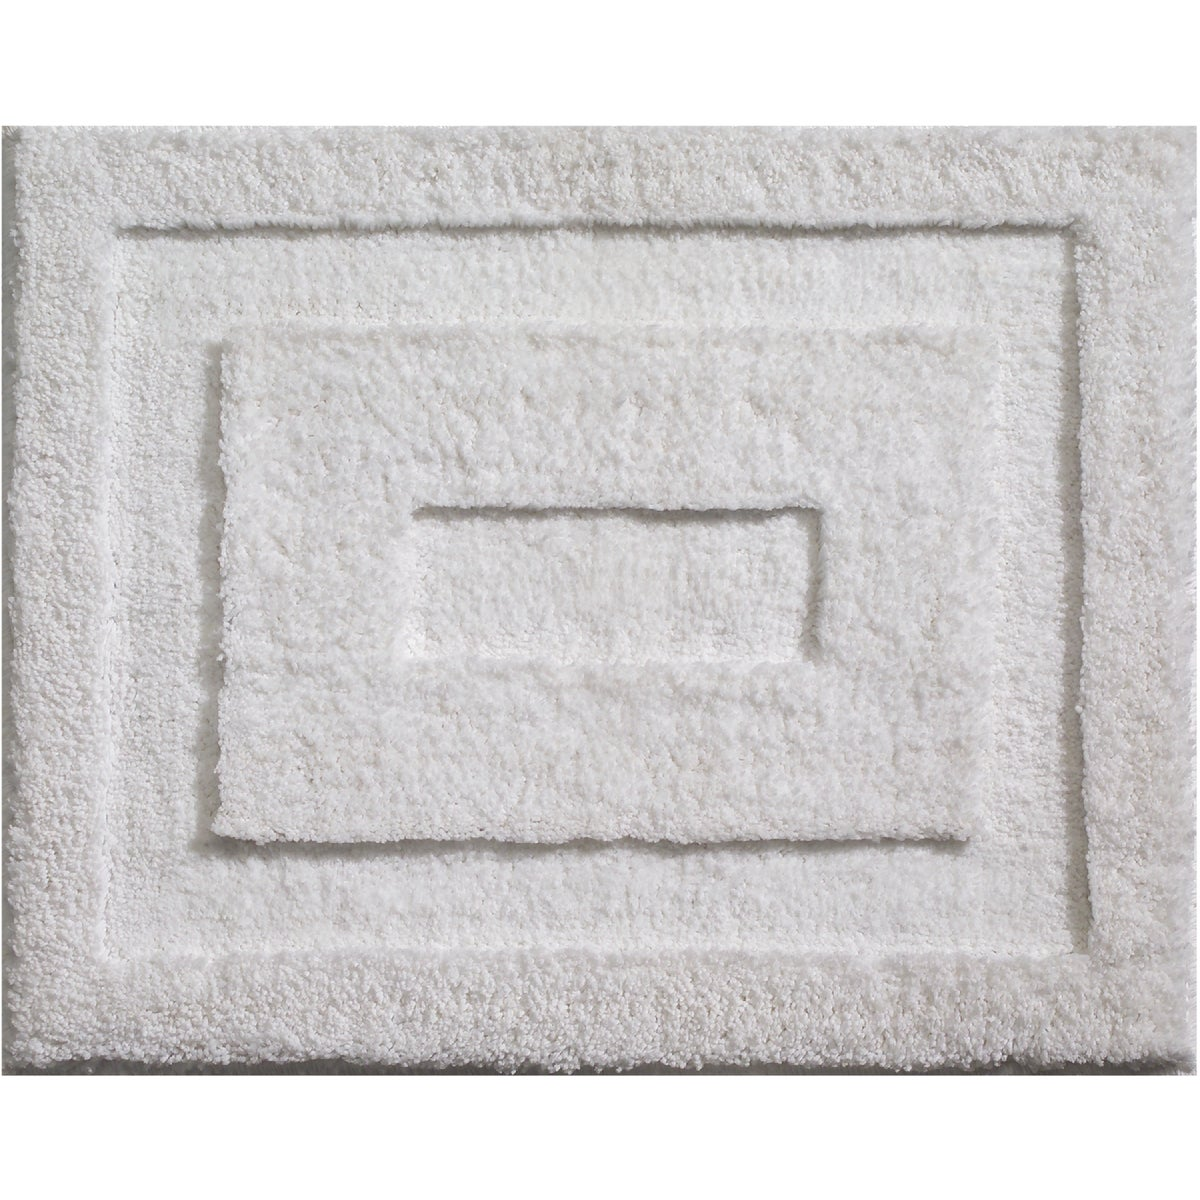 21X17 WHITE BATH RUG - 17030 by Interdesign Inc